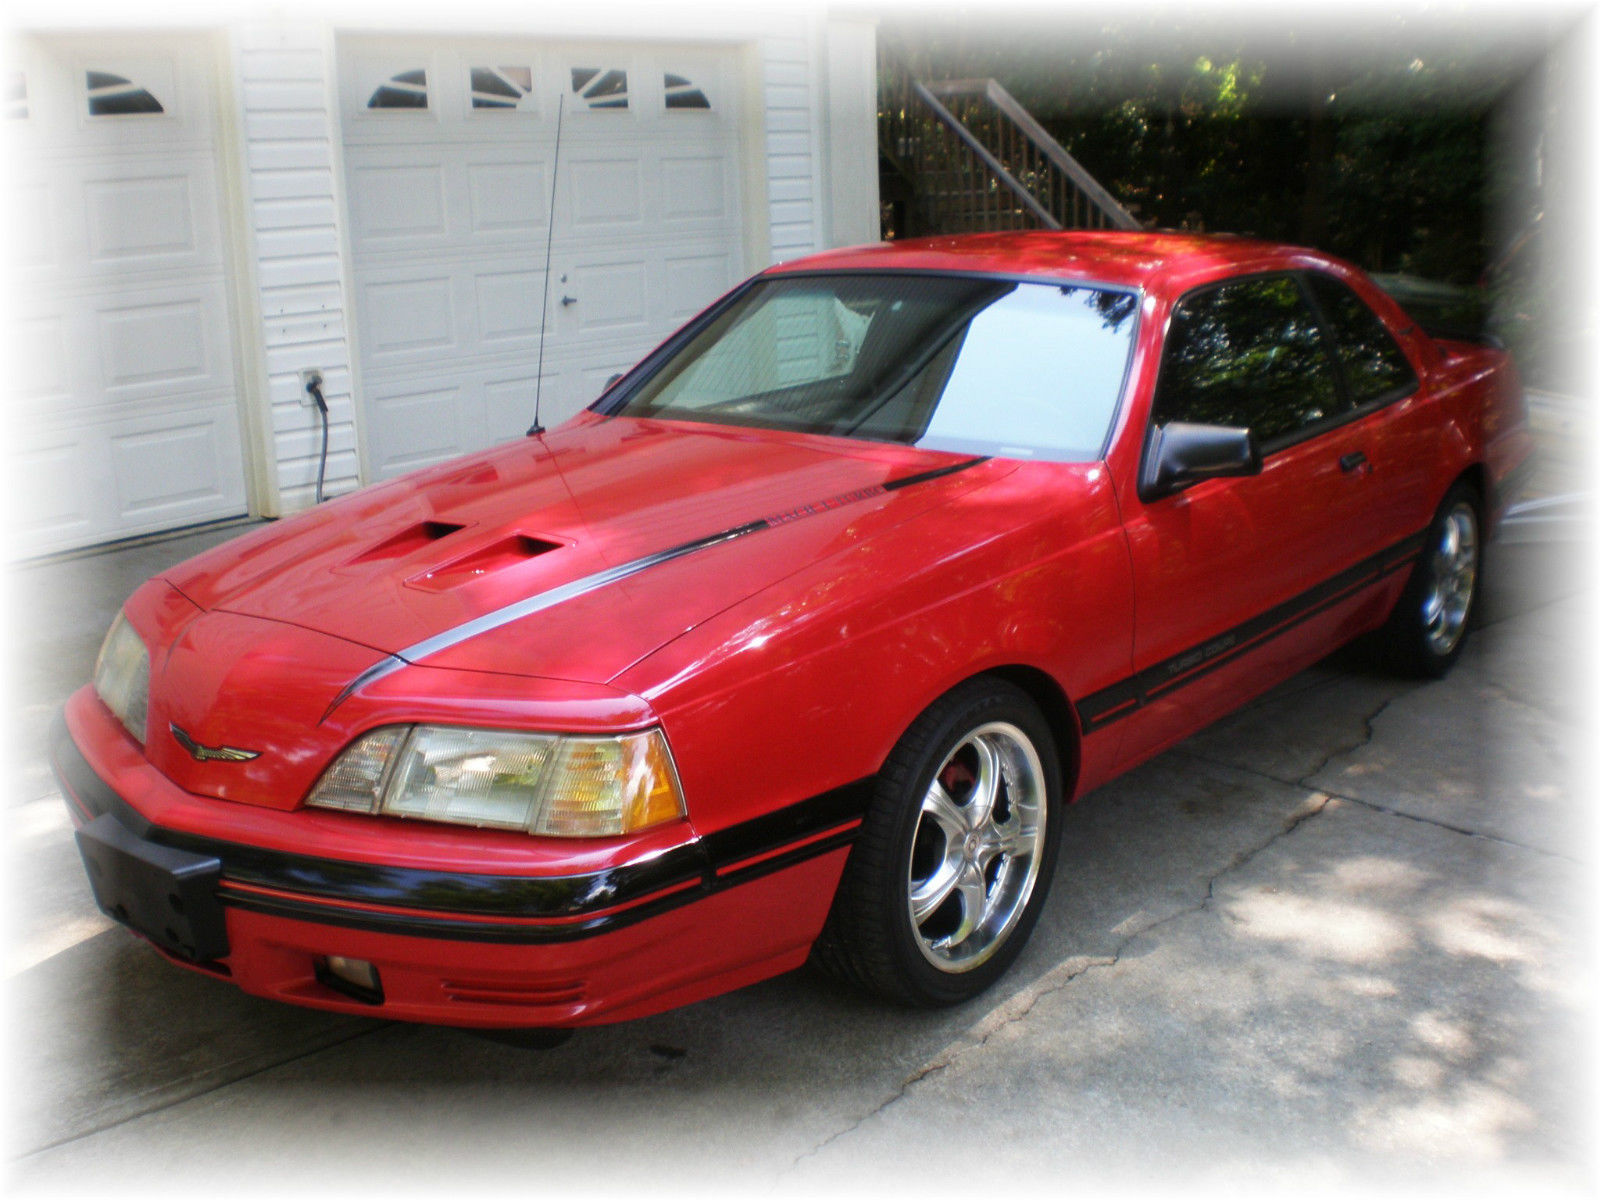 1988 Ford Thunderbird Turbo Coupe Mach 1 Special Edition